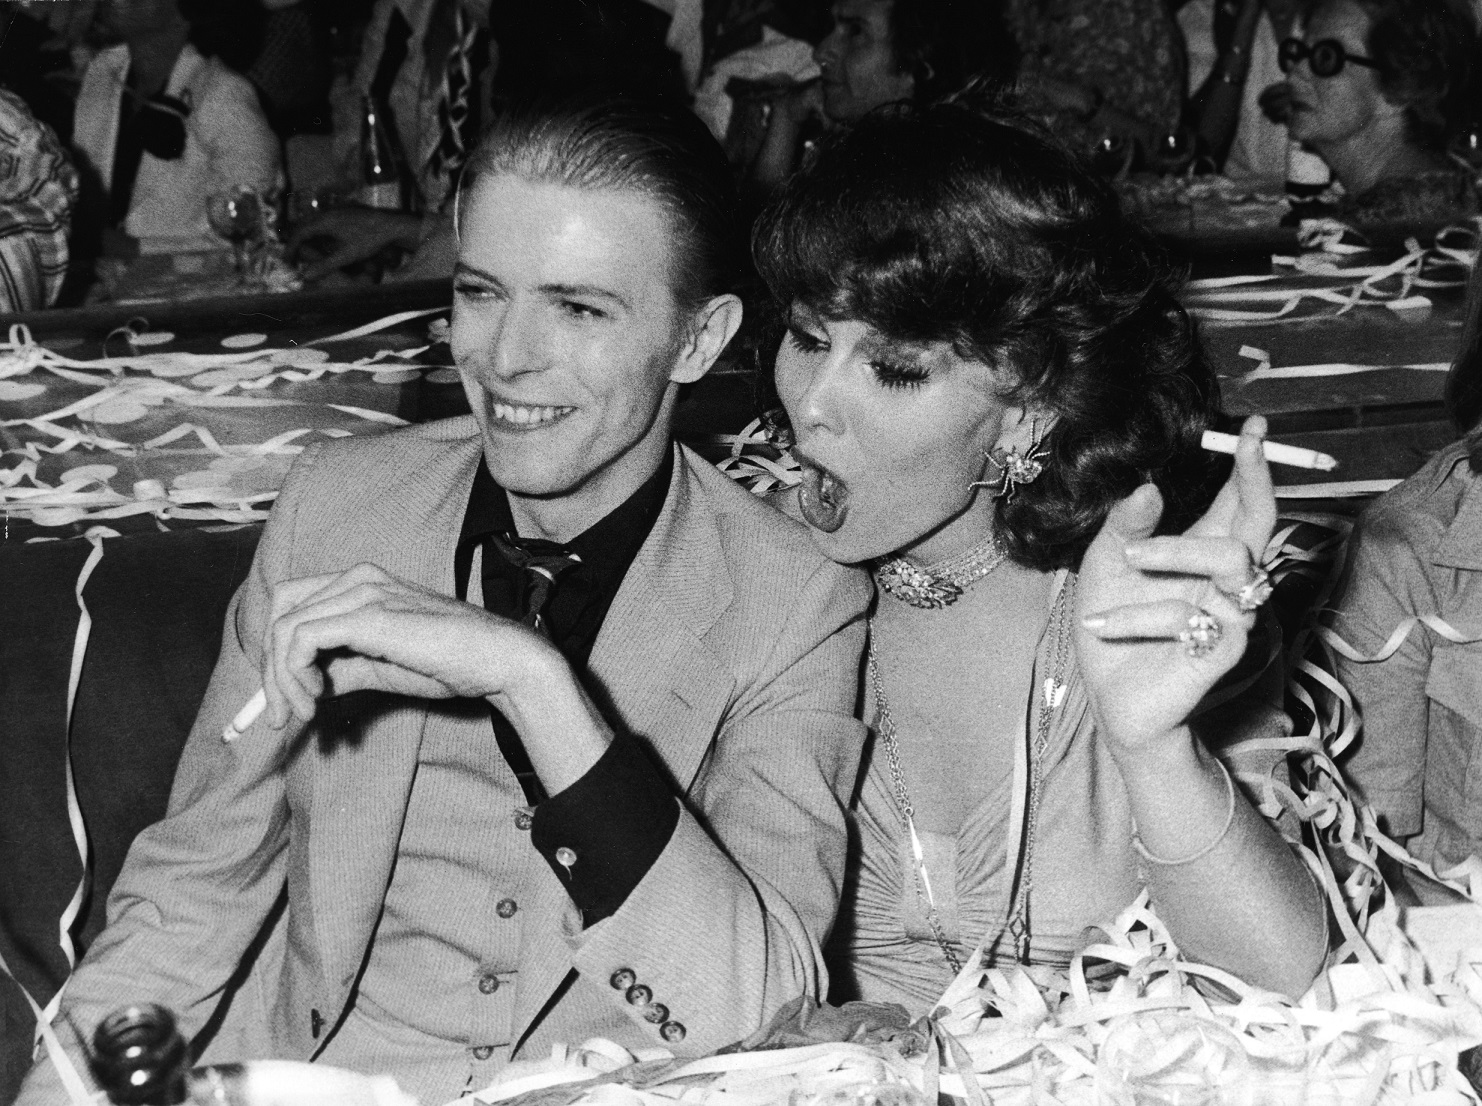 David Bowie And Romy Haag In Paris Photo by Pictorial Parade/Getty Images)